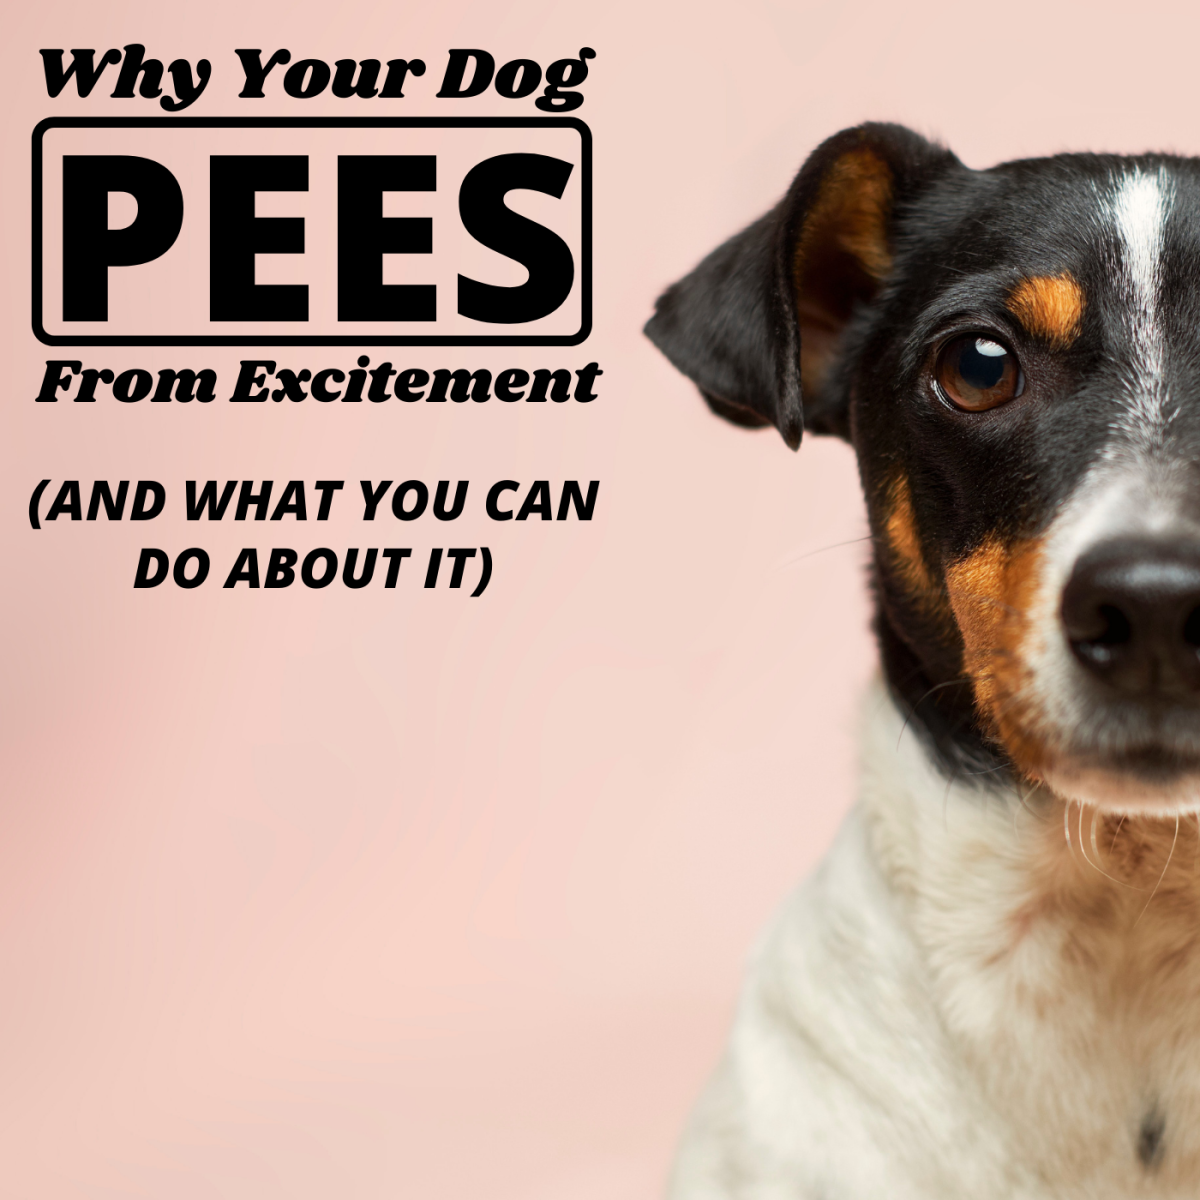 Some dogs urinate when they get excited, but this behavior can usually be eliminated with time.